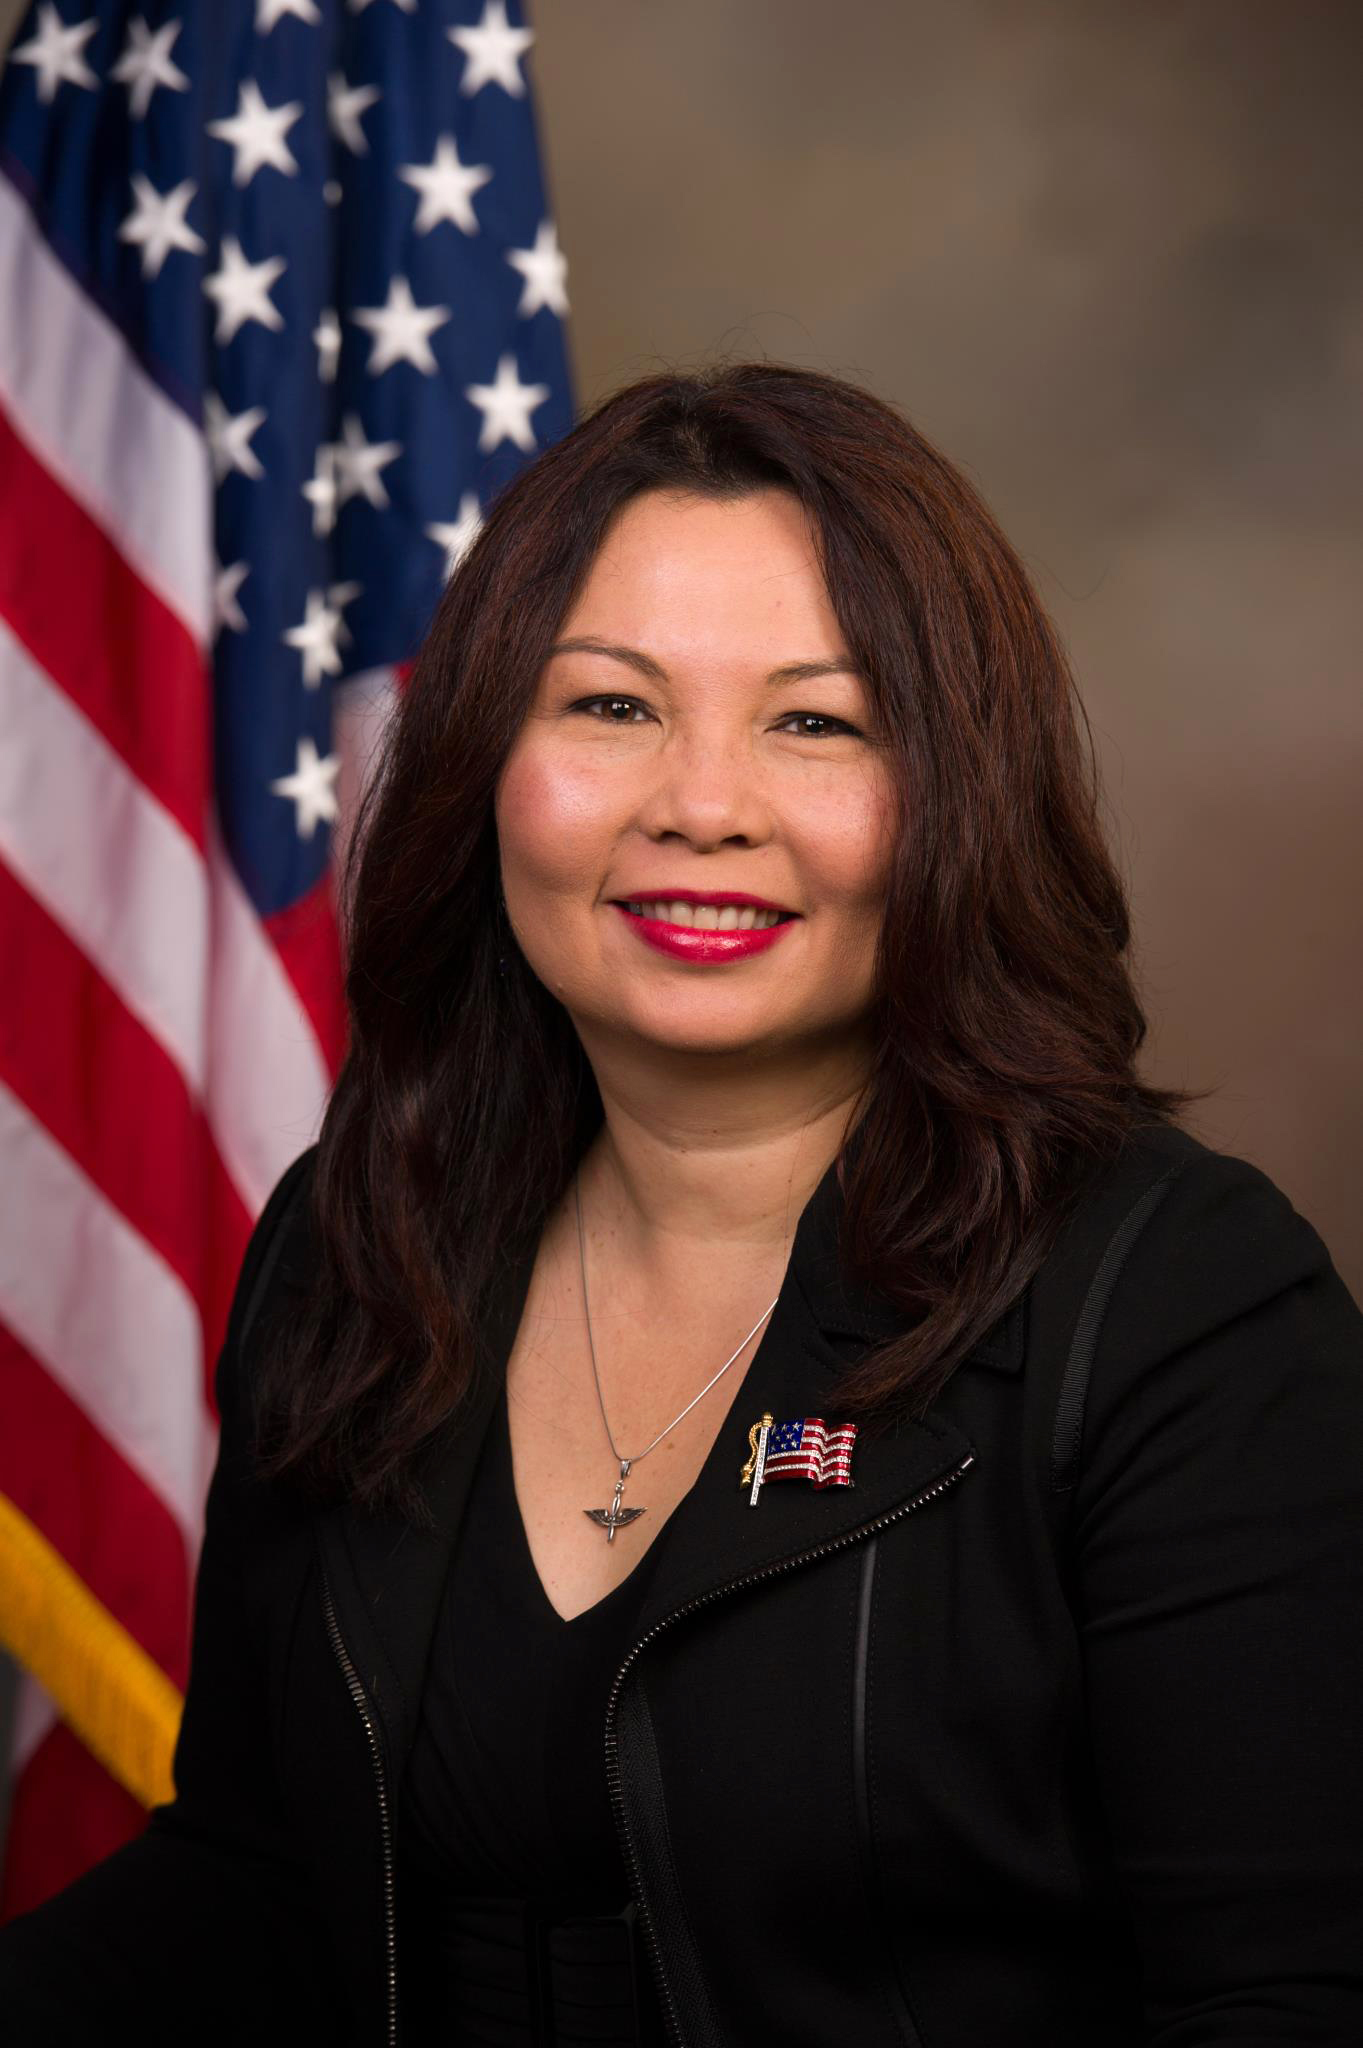 Congresswoman Duckworth to Regulators: Don't Let Canadian Pacific's Refusal to Negotiate Hold Up Elgin-O'Hare Western Access, Kill Jobs